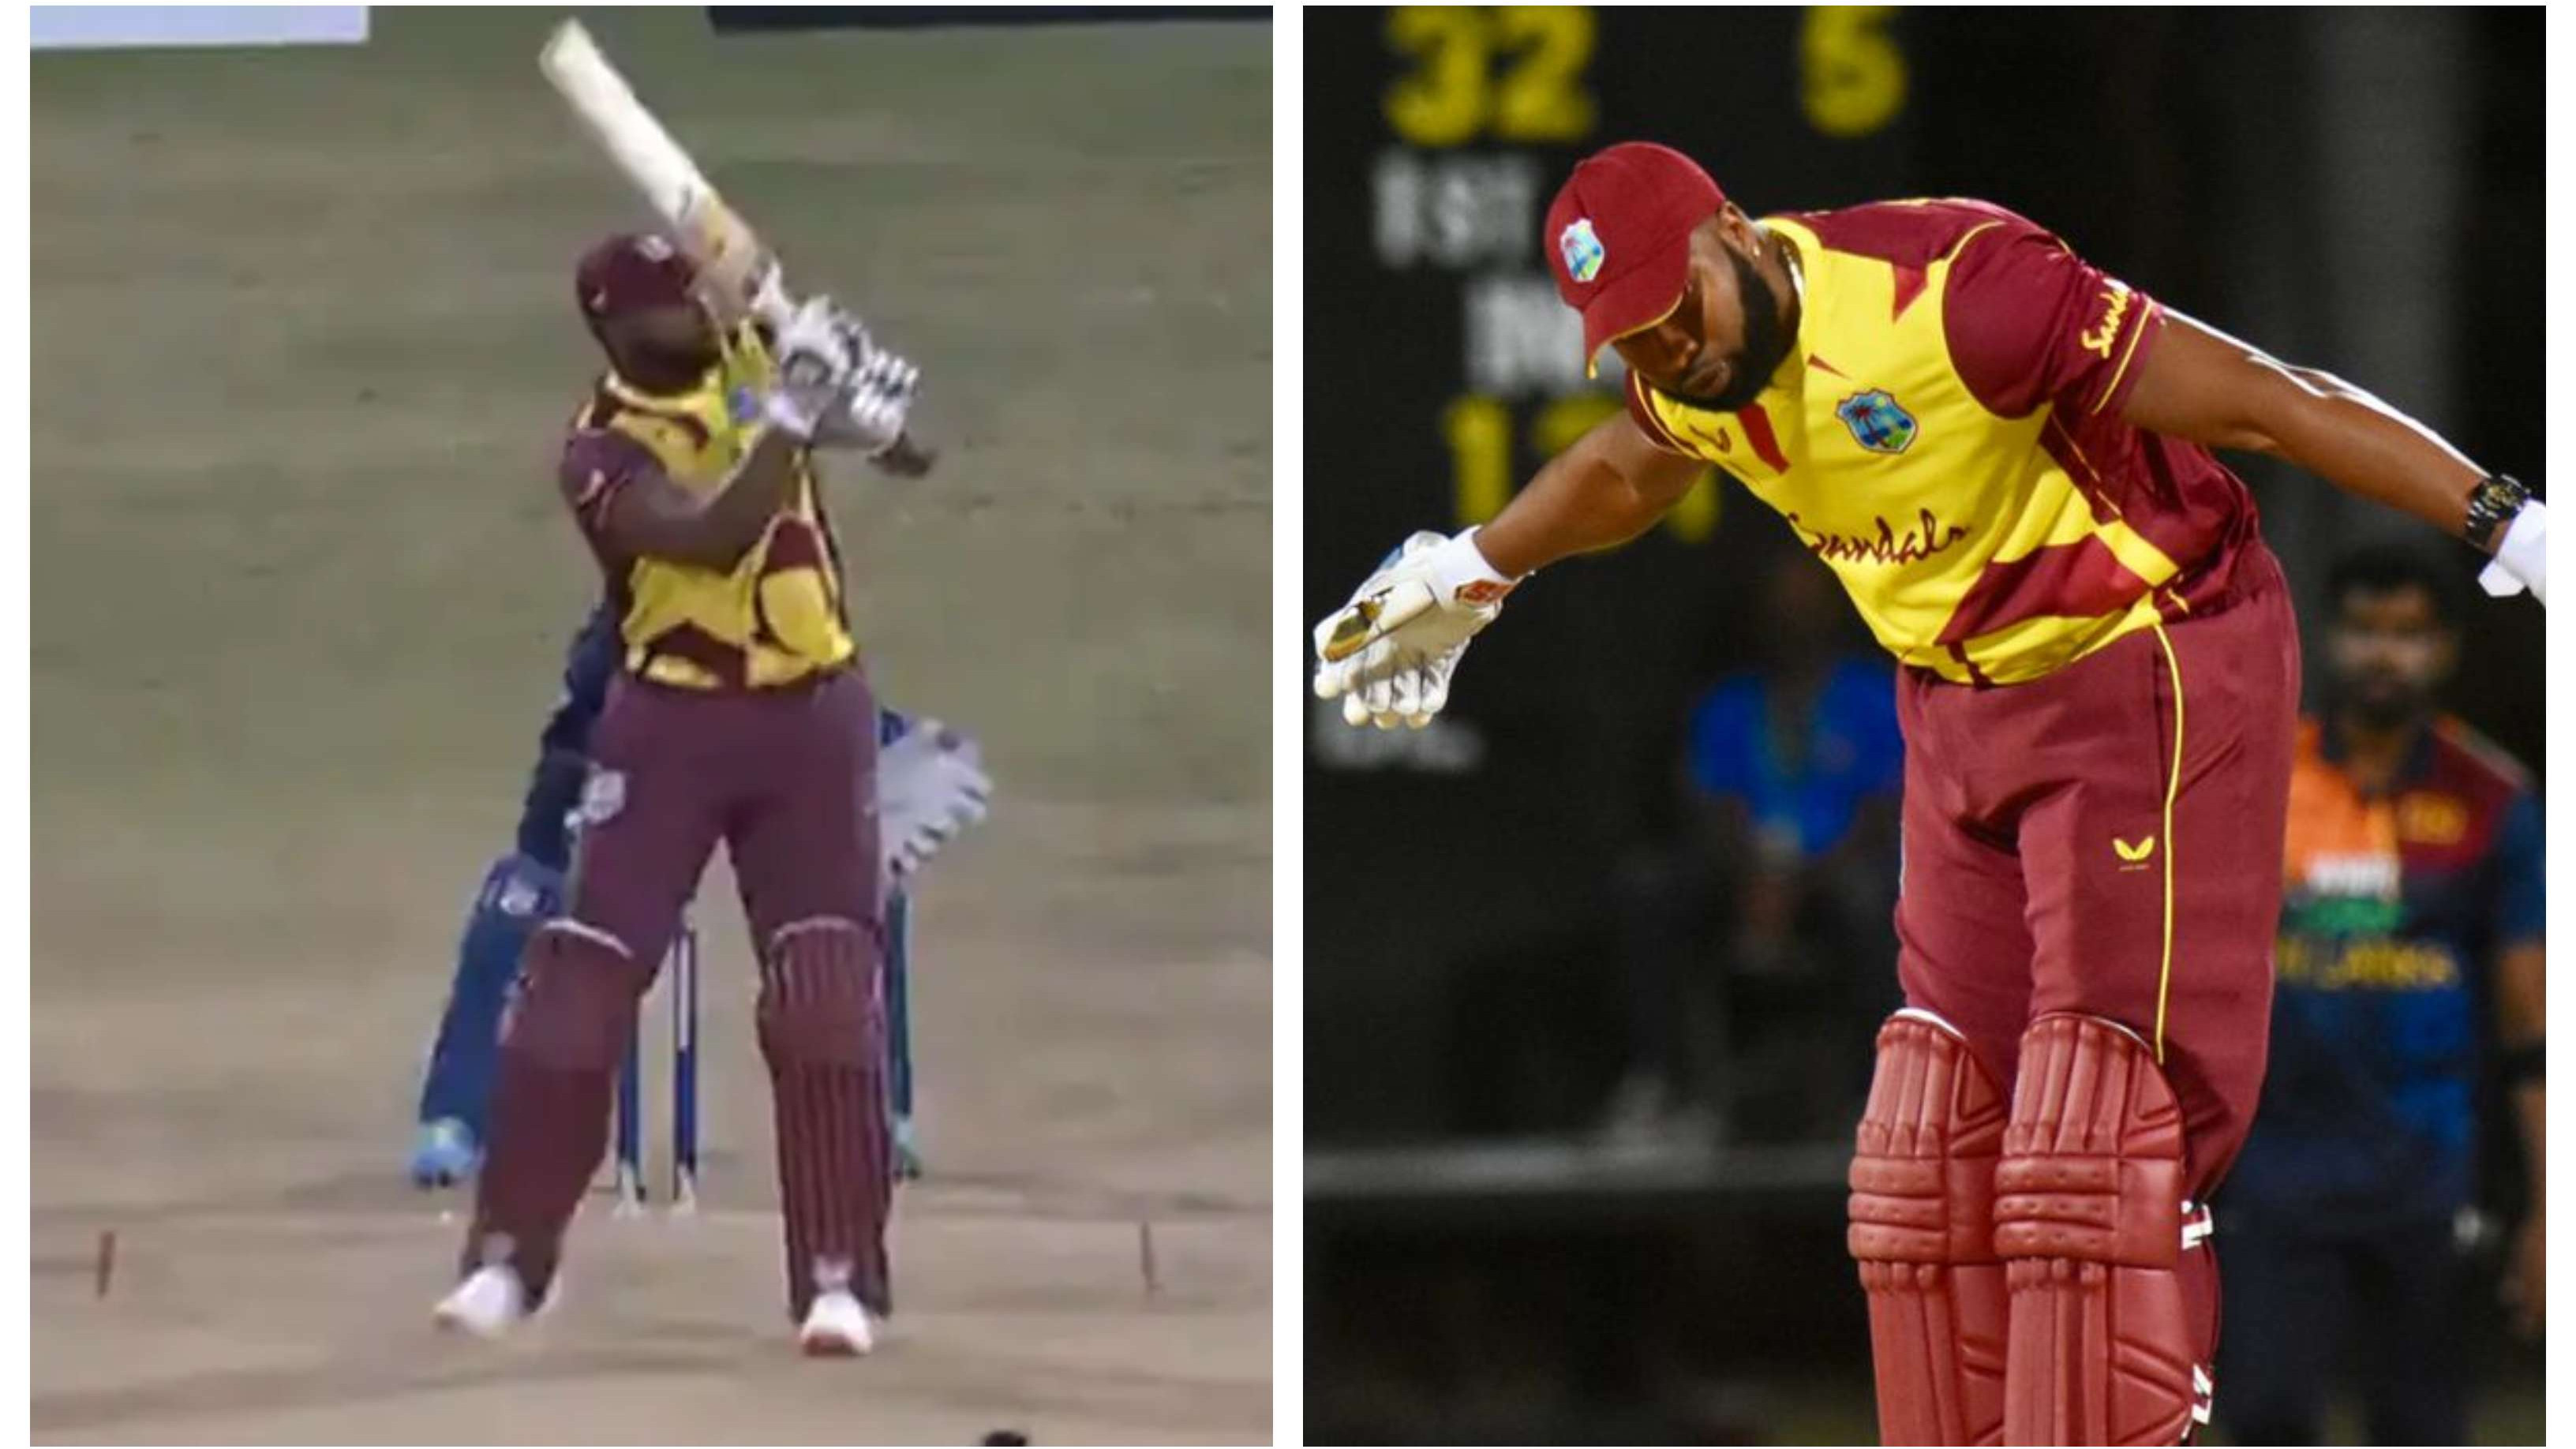 WI v SL 2021: WATCH – Kieron Pollard smashes 6 sixes in an over during first T20I against Sri Lanka